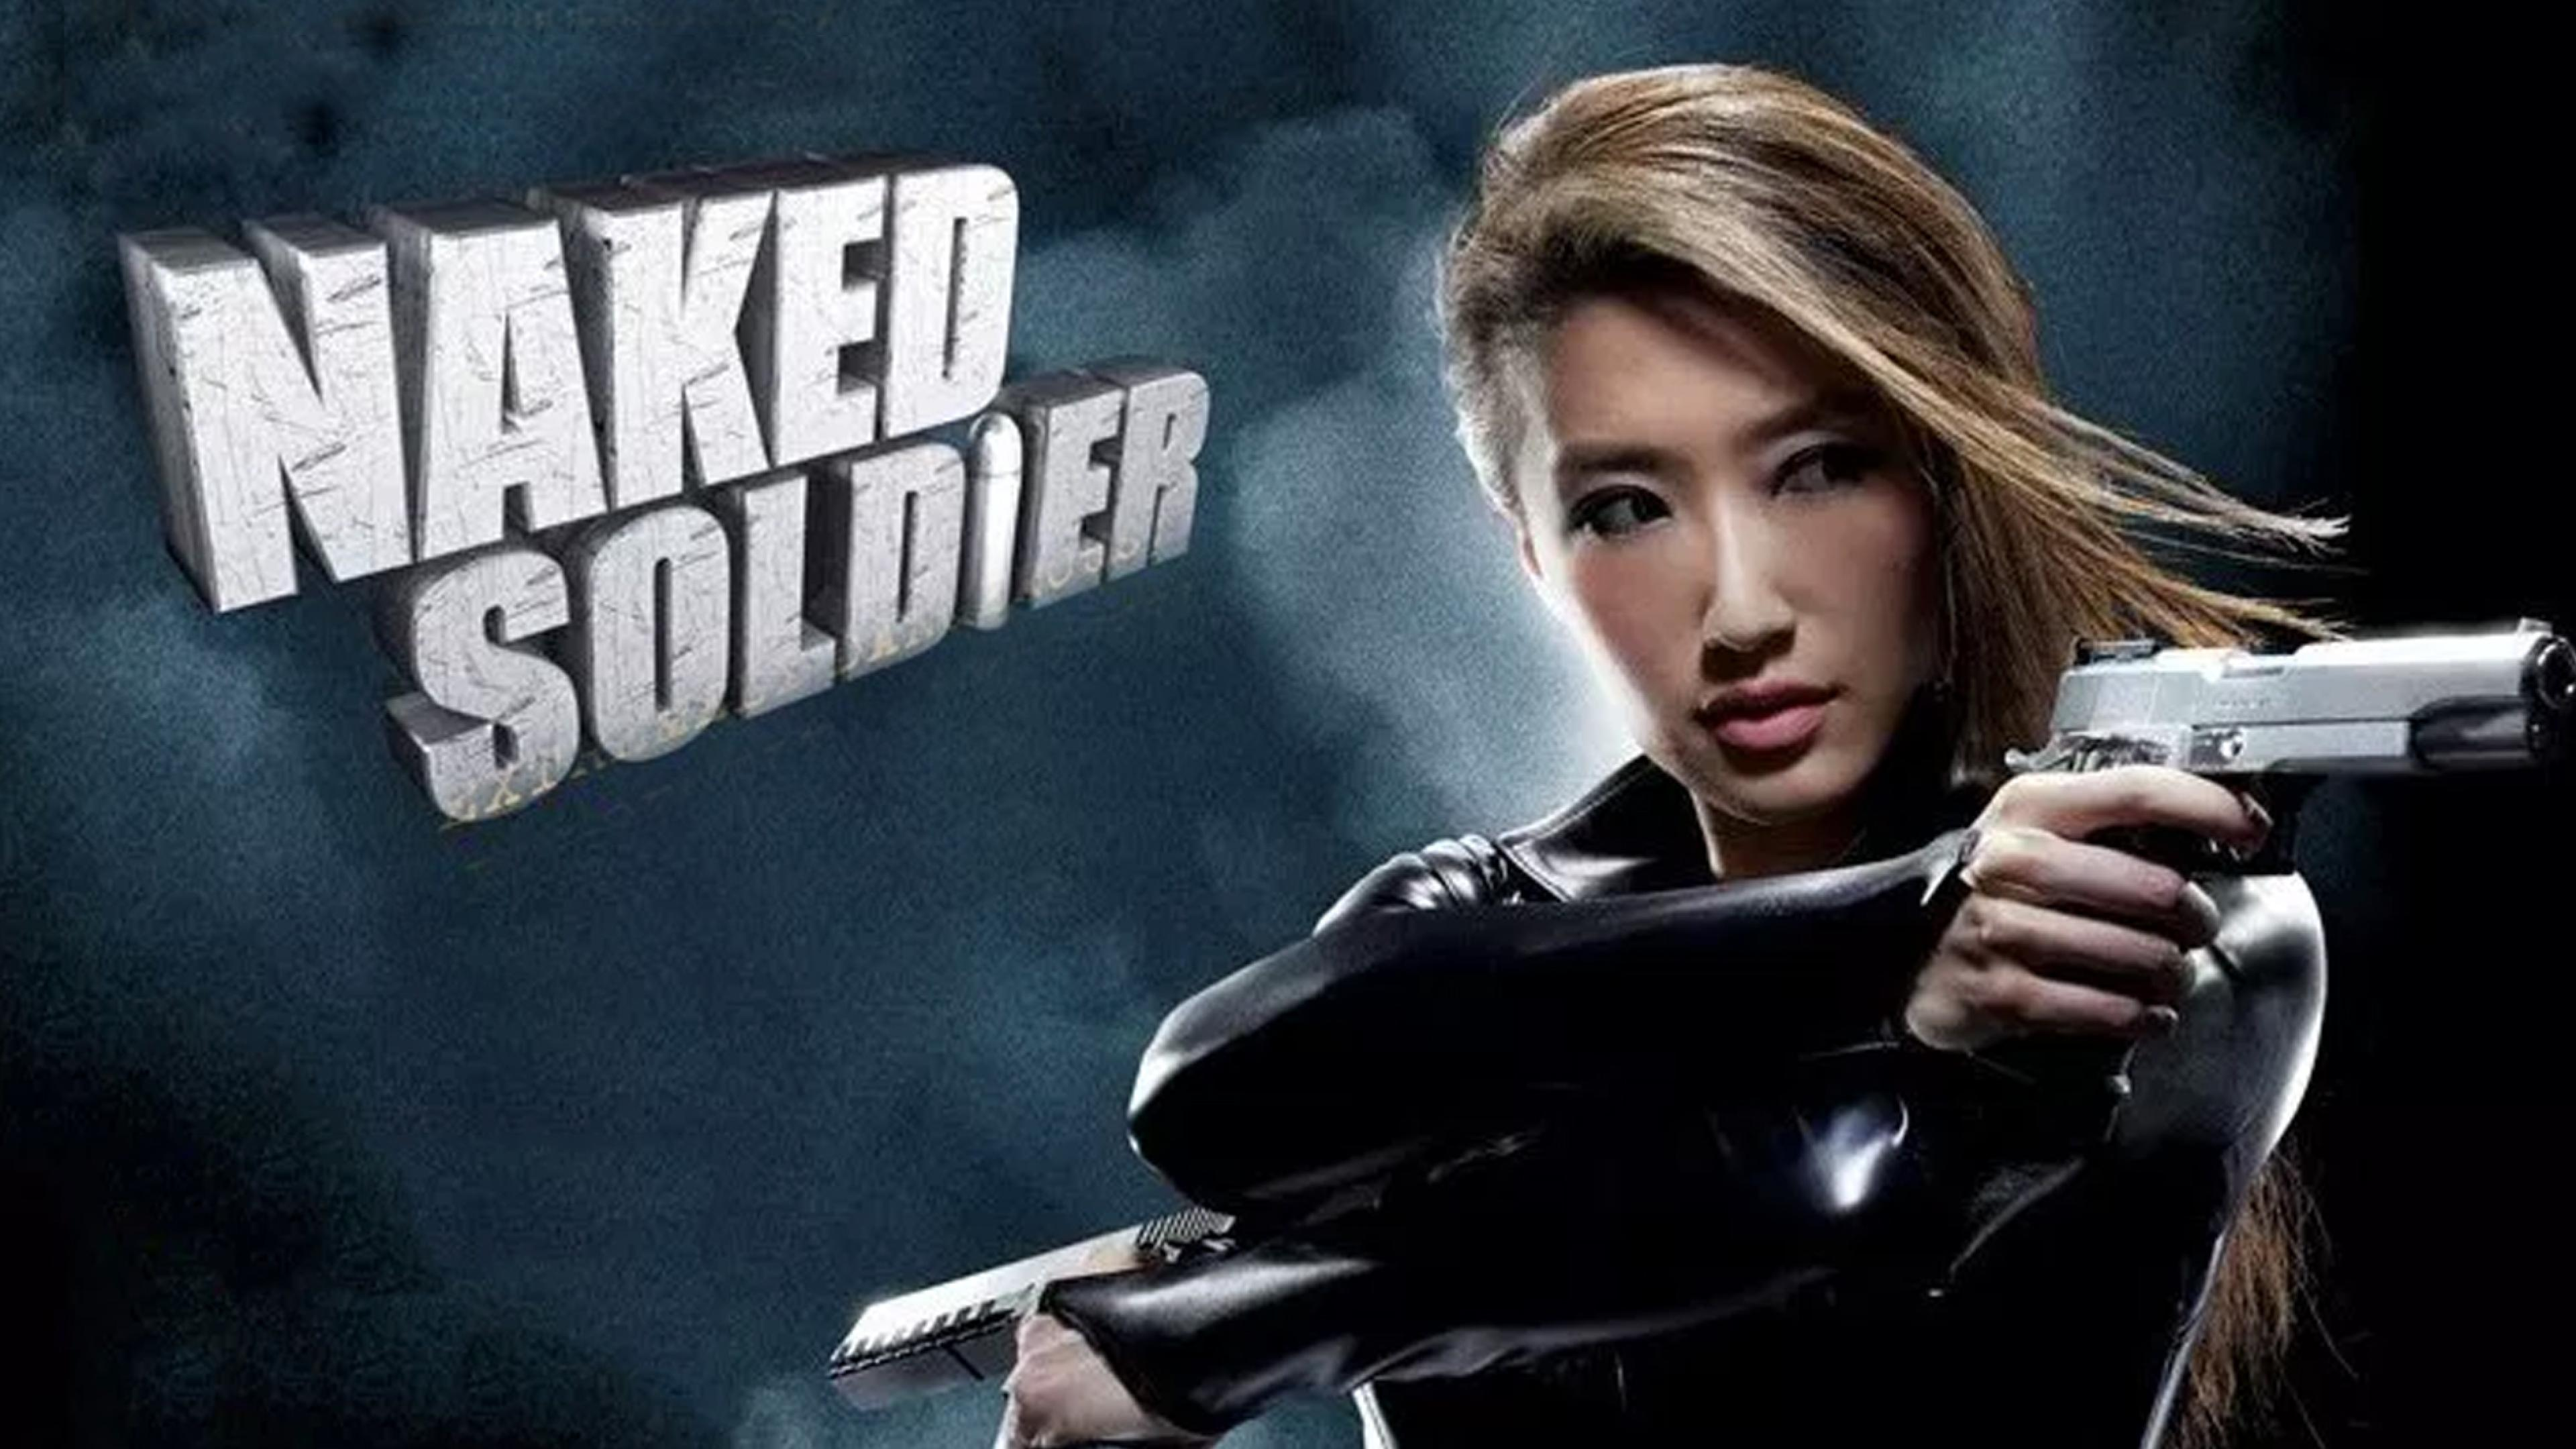 YESASIA: Naked Soldier (2012) (VCD) (Hong Kong Version